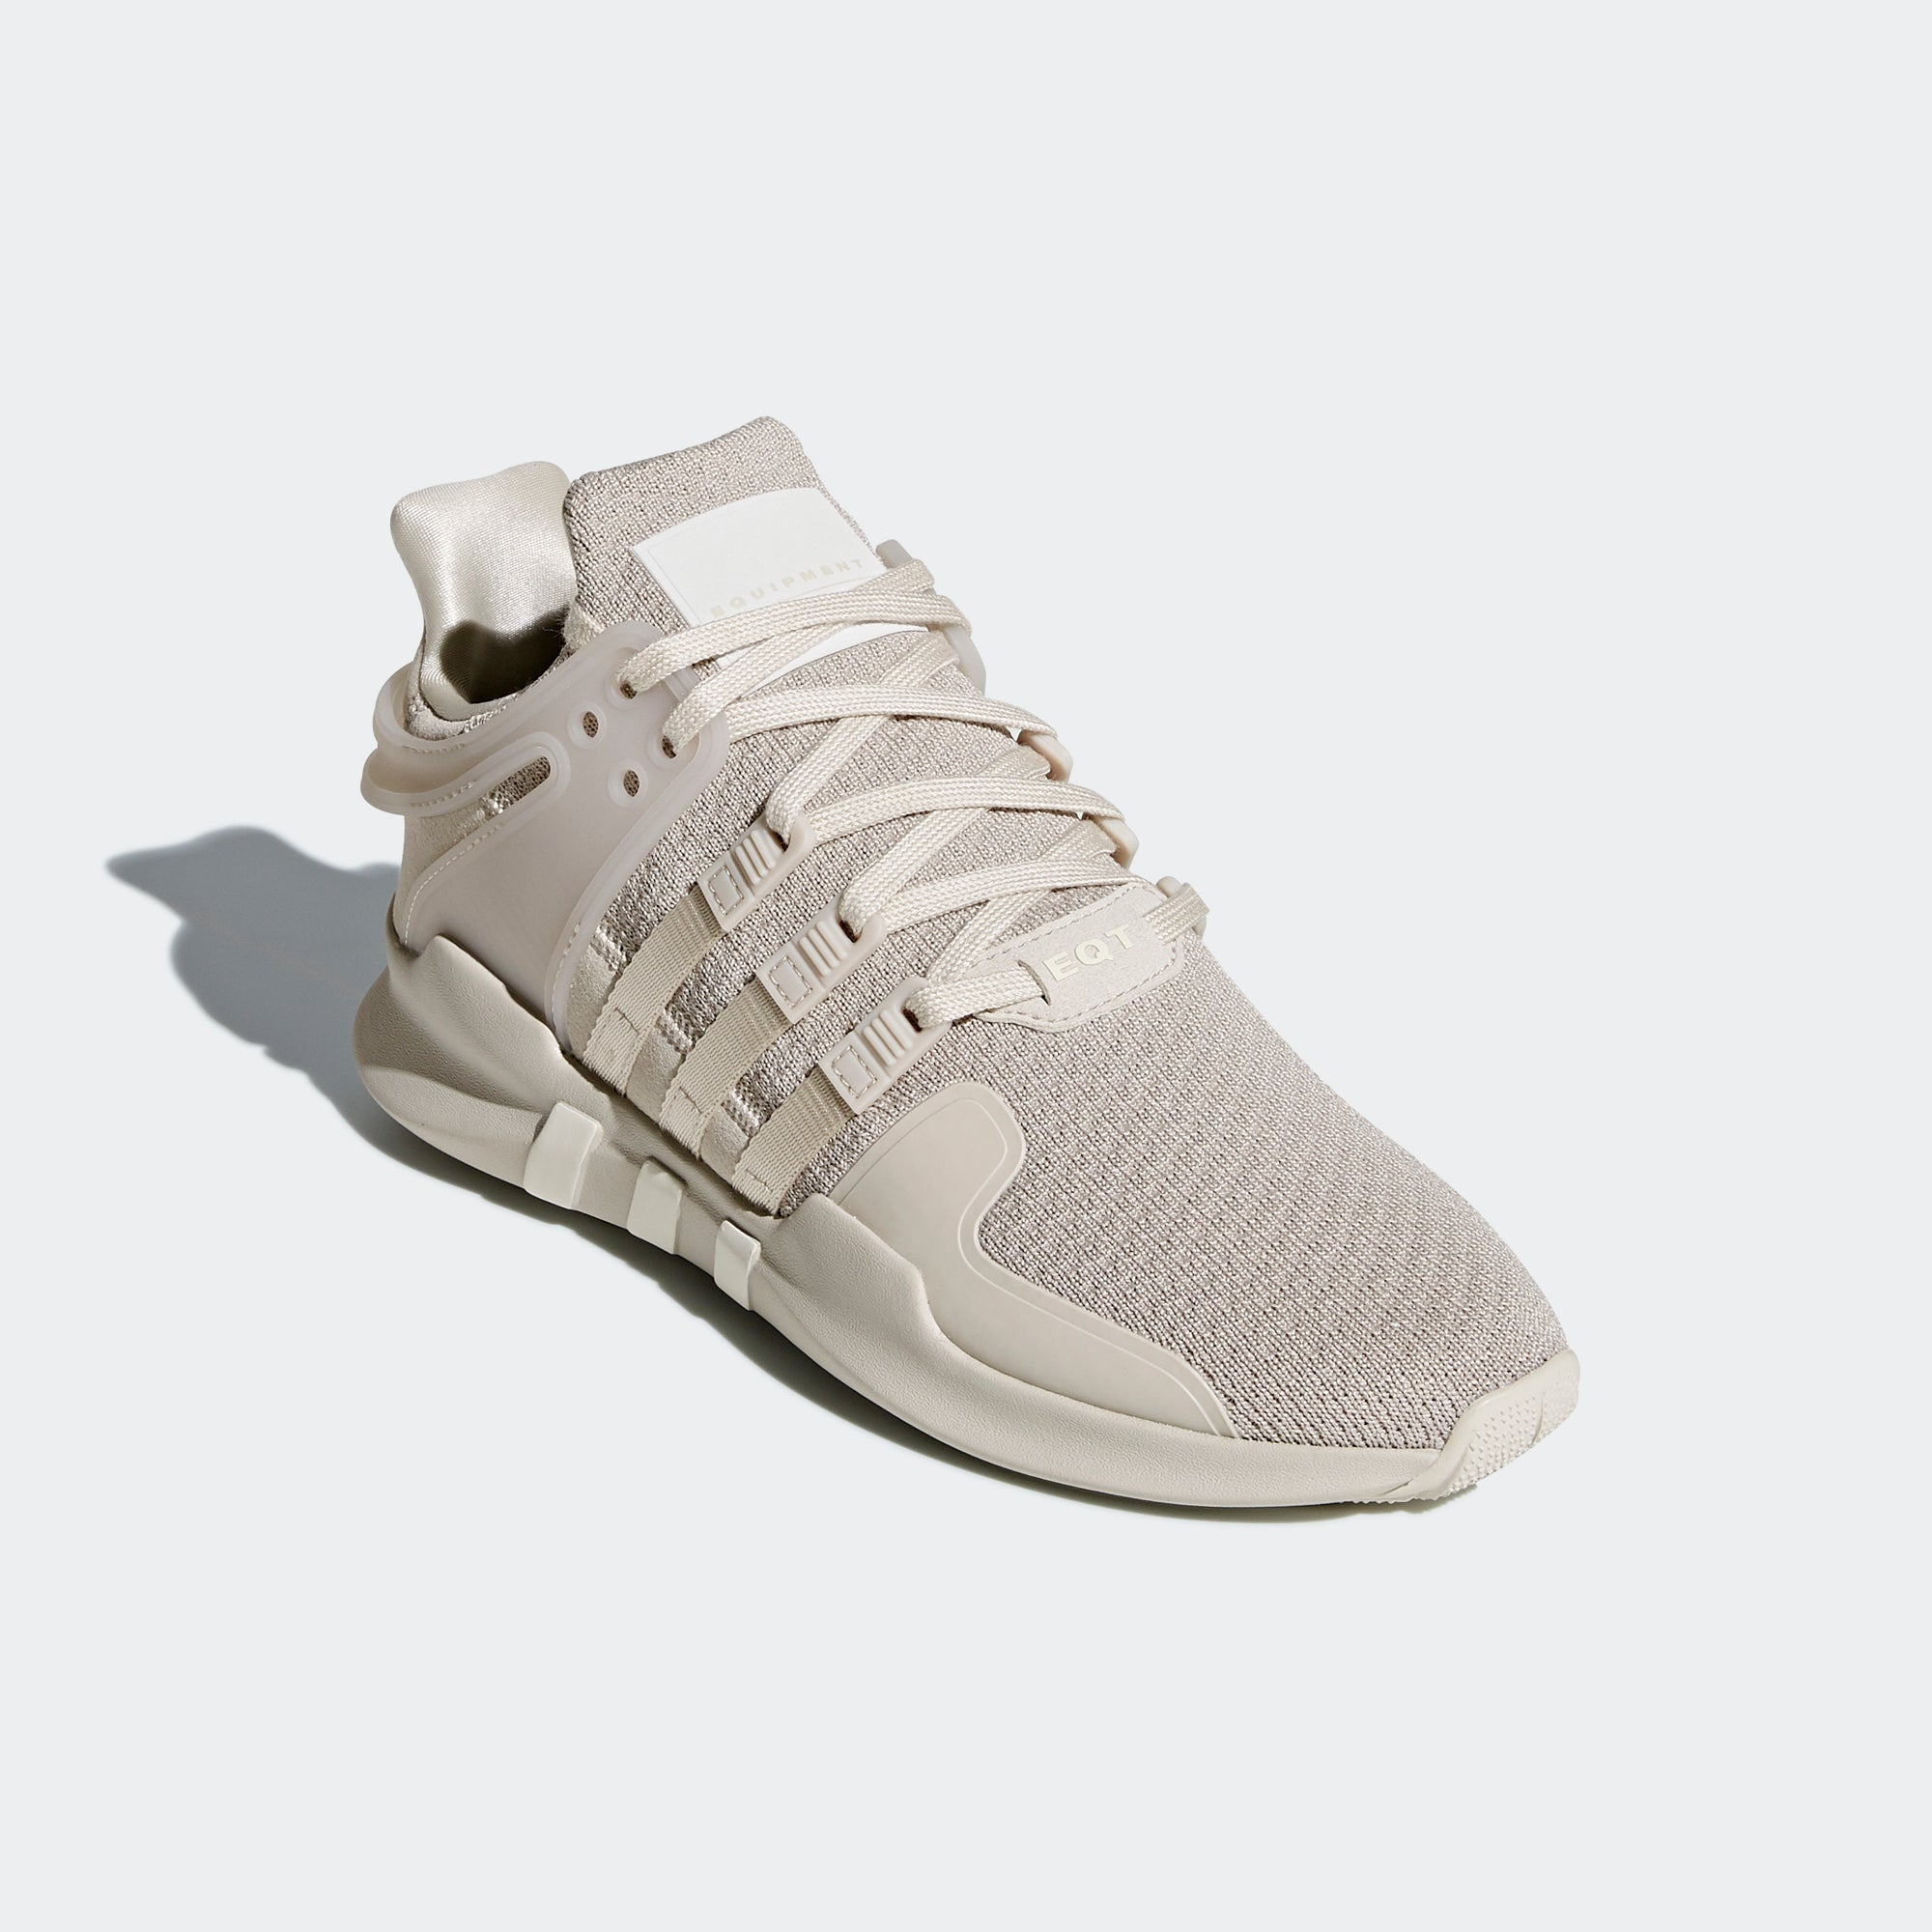 adidas EQT Support ADV Shoes Clear Brown B37543 | Chicago City Sports